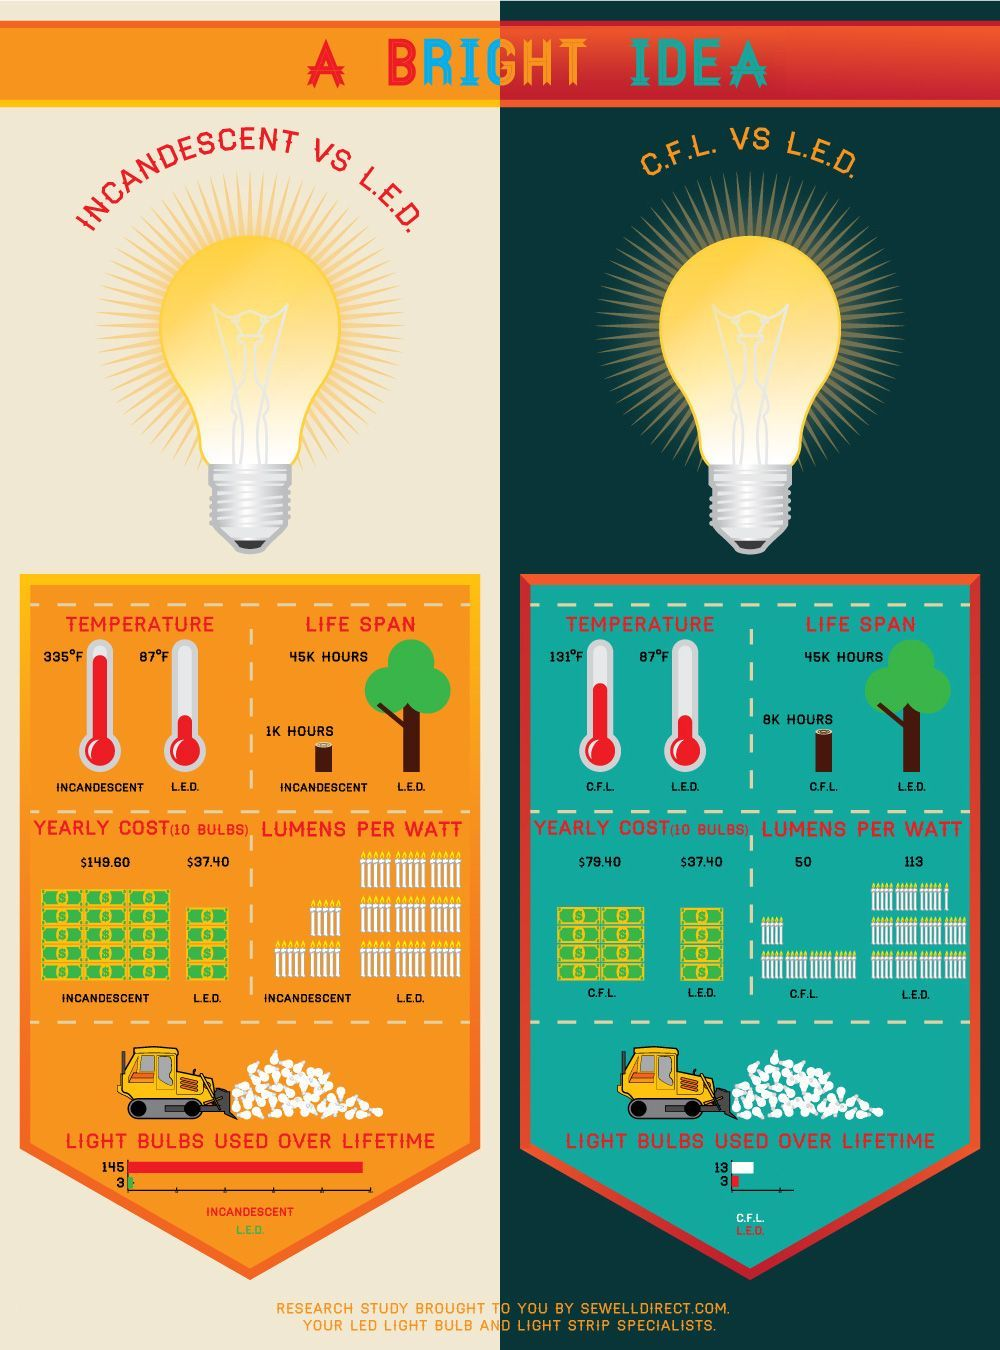 Led Vs Cfl Vs Incandescent Light Bulbs Incandescent Lighting Incandescent Light Bulbs Bulb